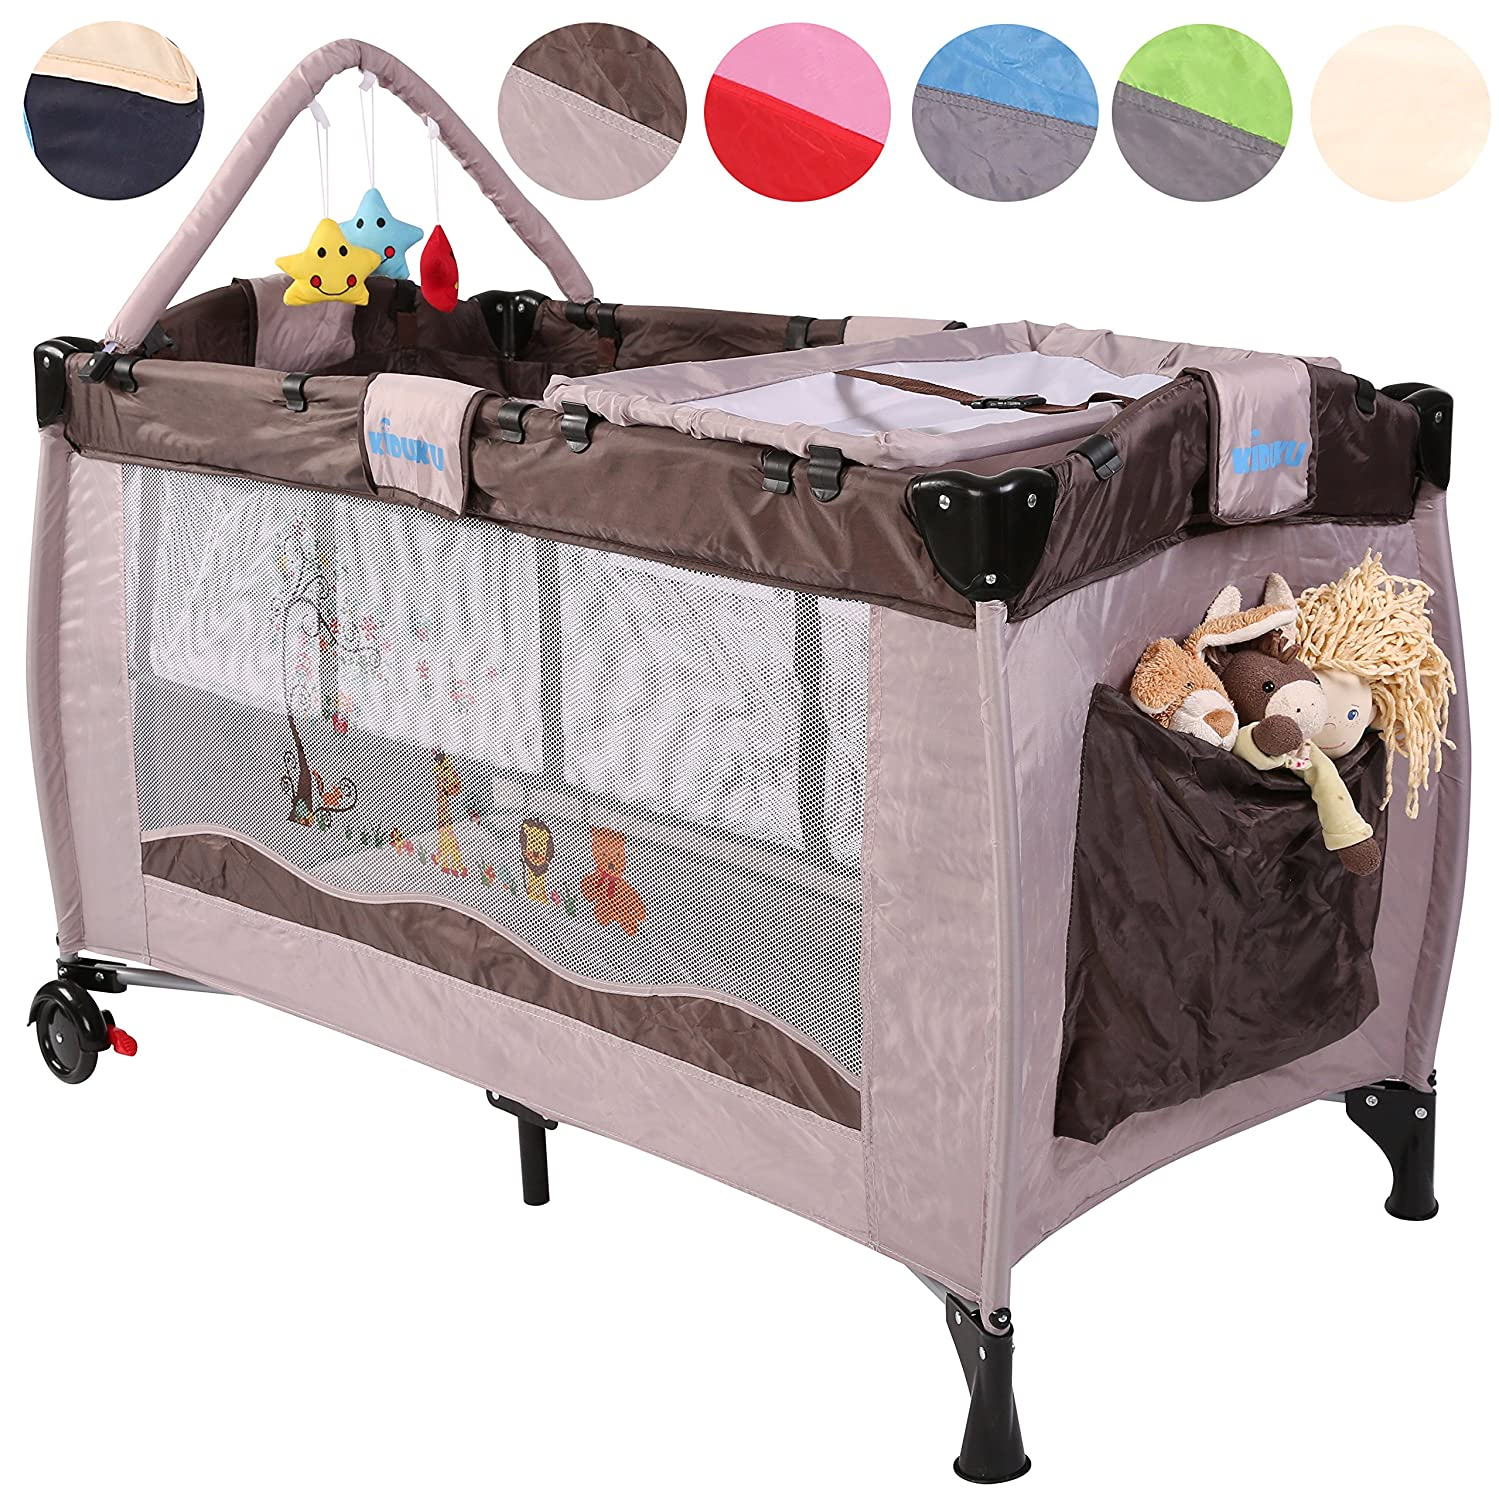 KIDUKU® Baby bed travel cot crib portable child bed folding bed bedside cot playpen, second level for infants/babies, 6 different colours, height-adjustable (Blue) DWD-Company